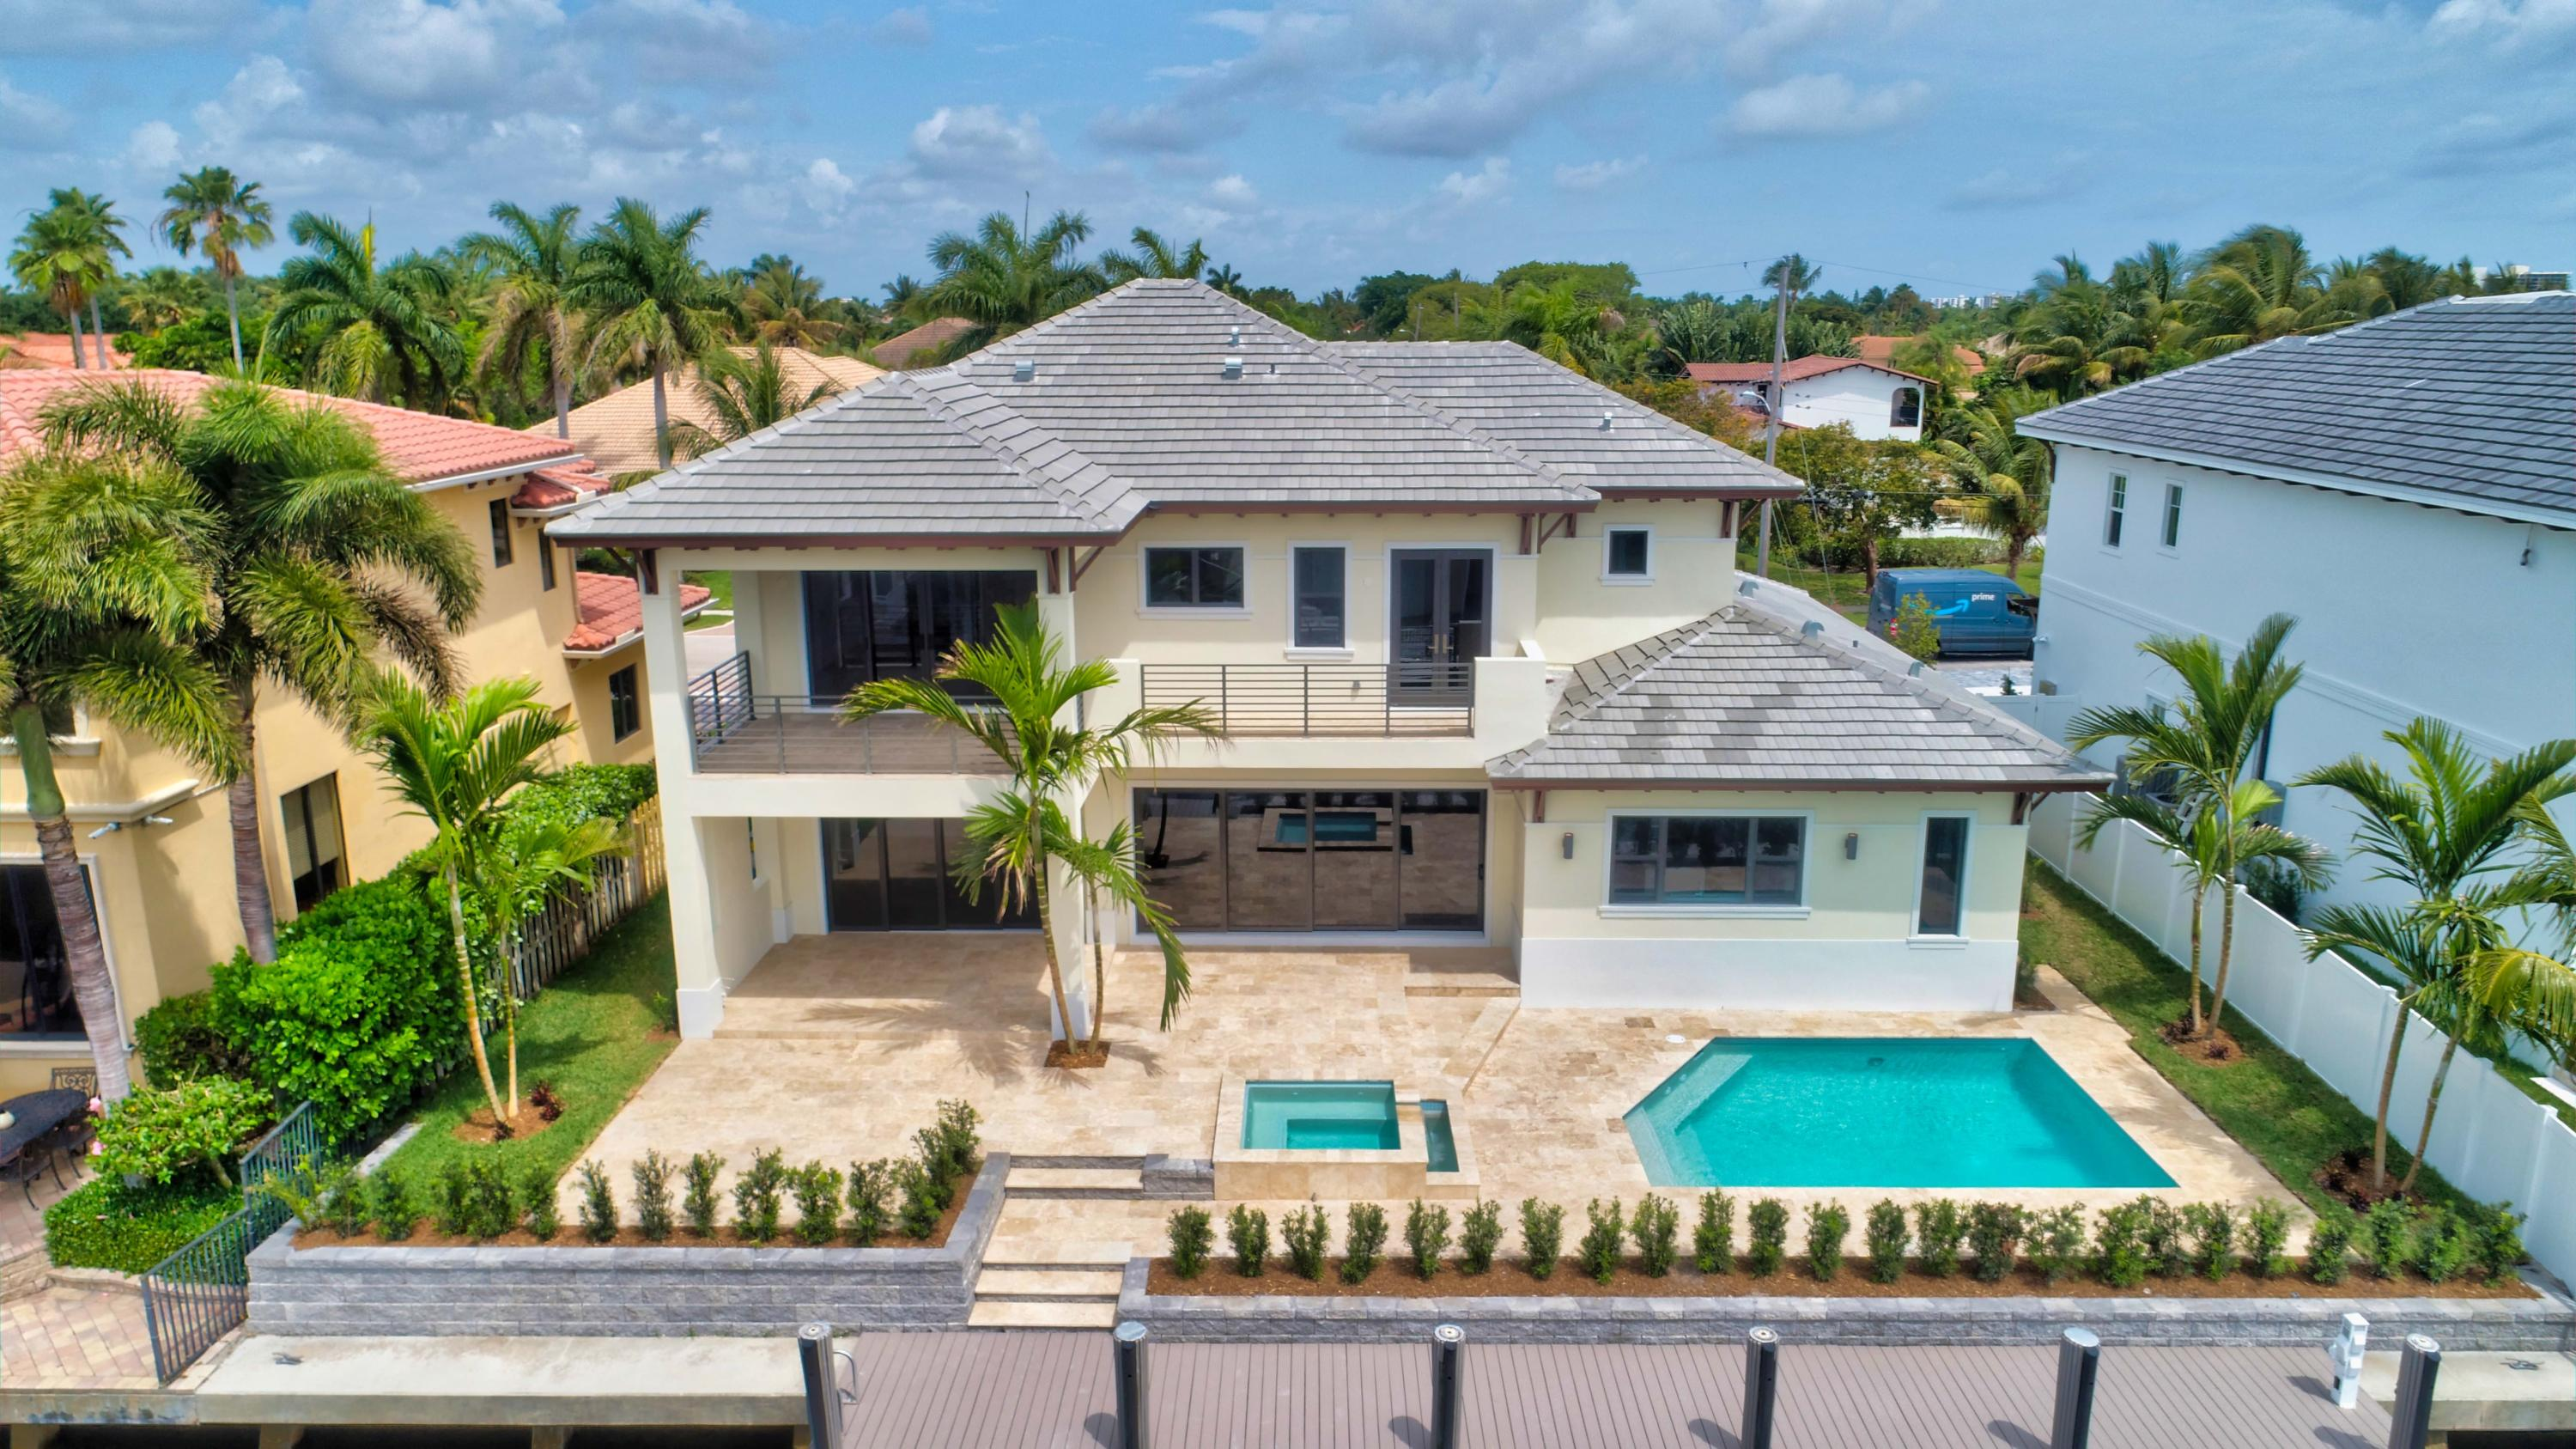 Home for sale in Boca Harbour Boca Raton Florida